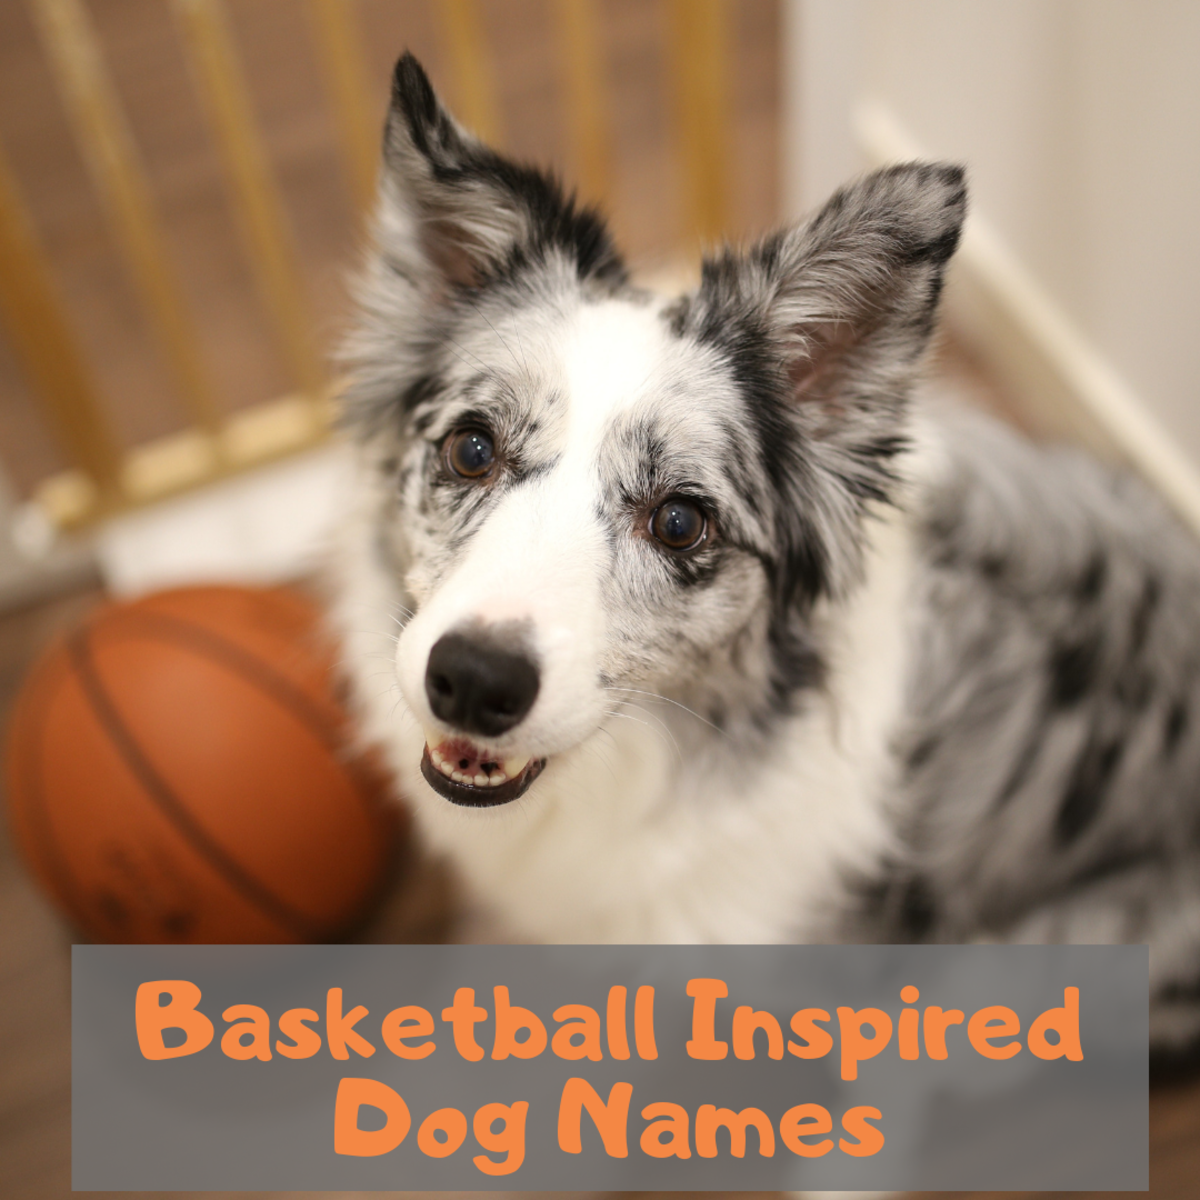 Sporty Pet Names: Dog Names After Basketball Players